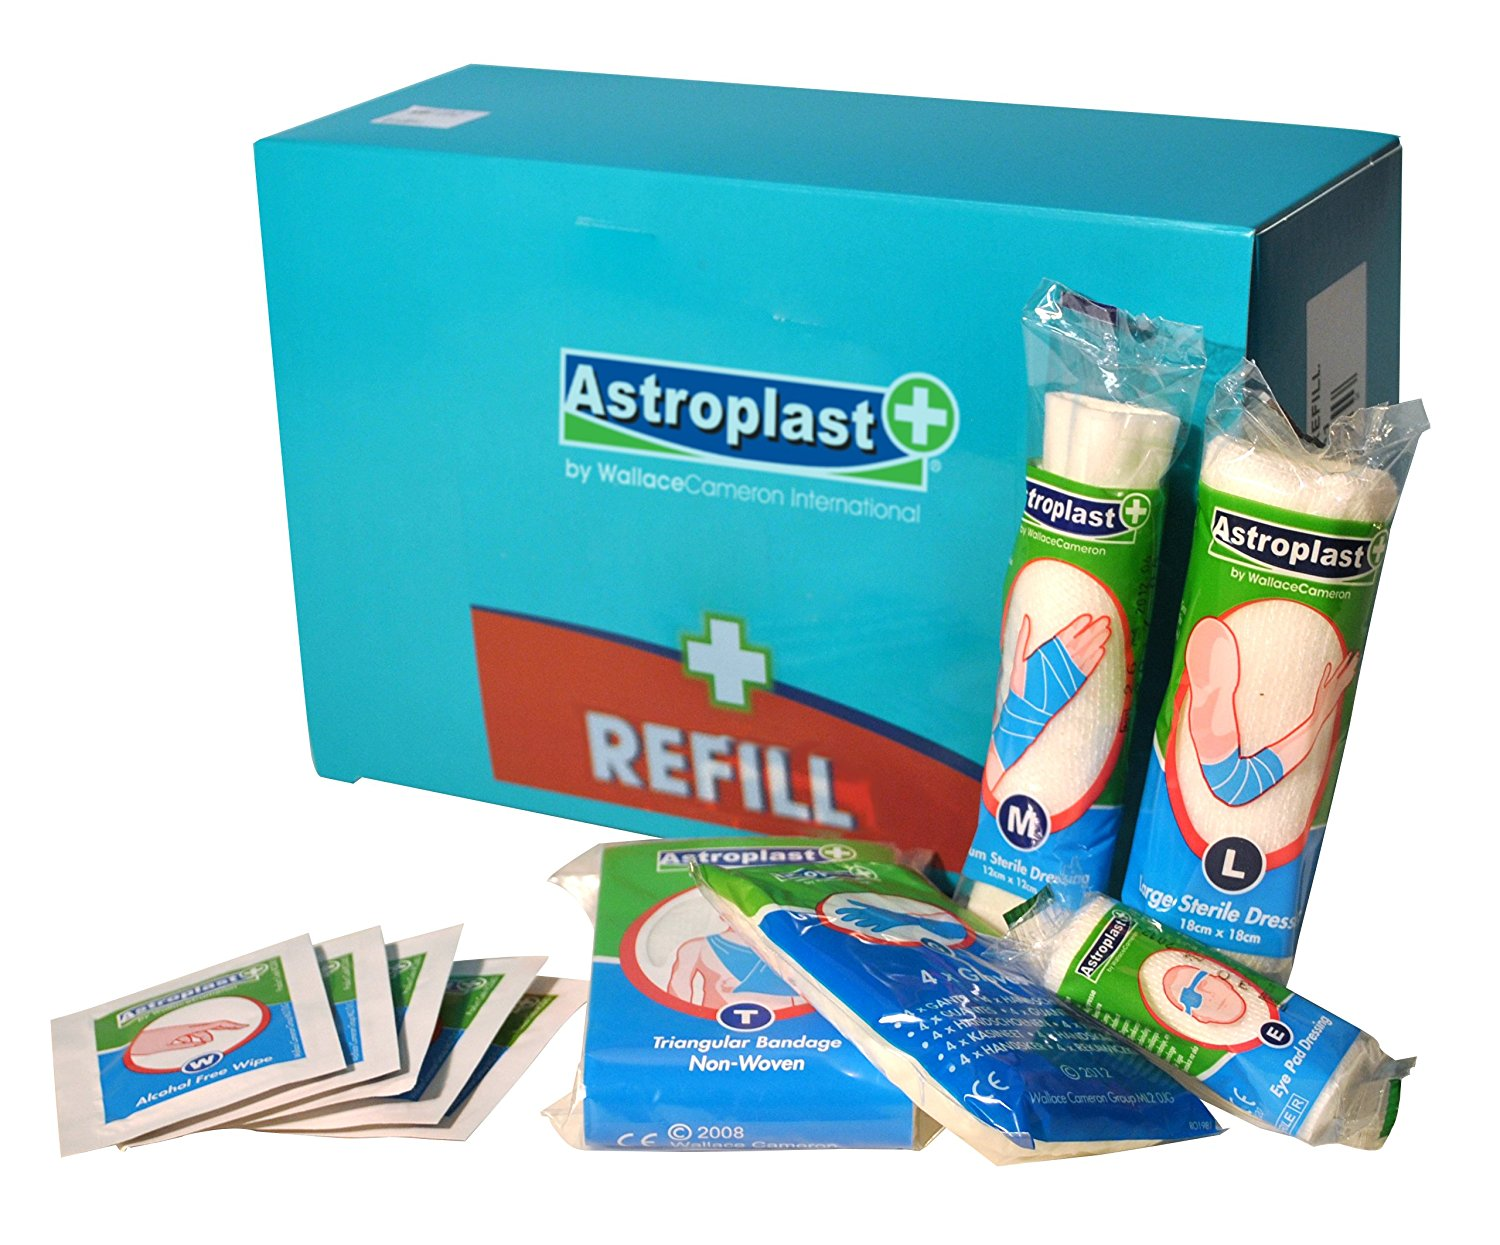 Astroplast Food & Hygene Kit Refill 10 person Aqua